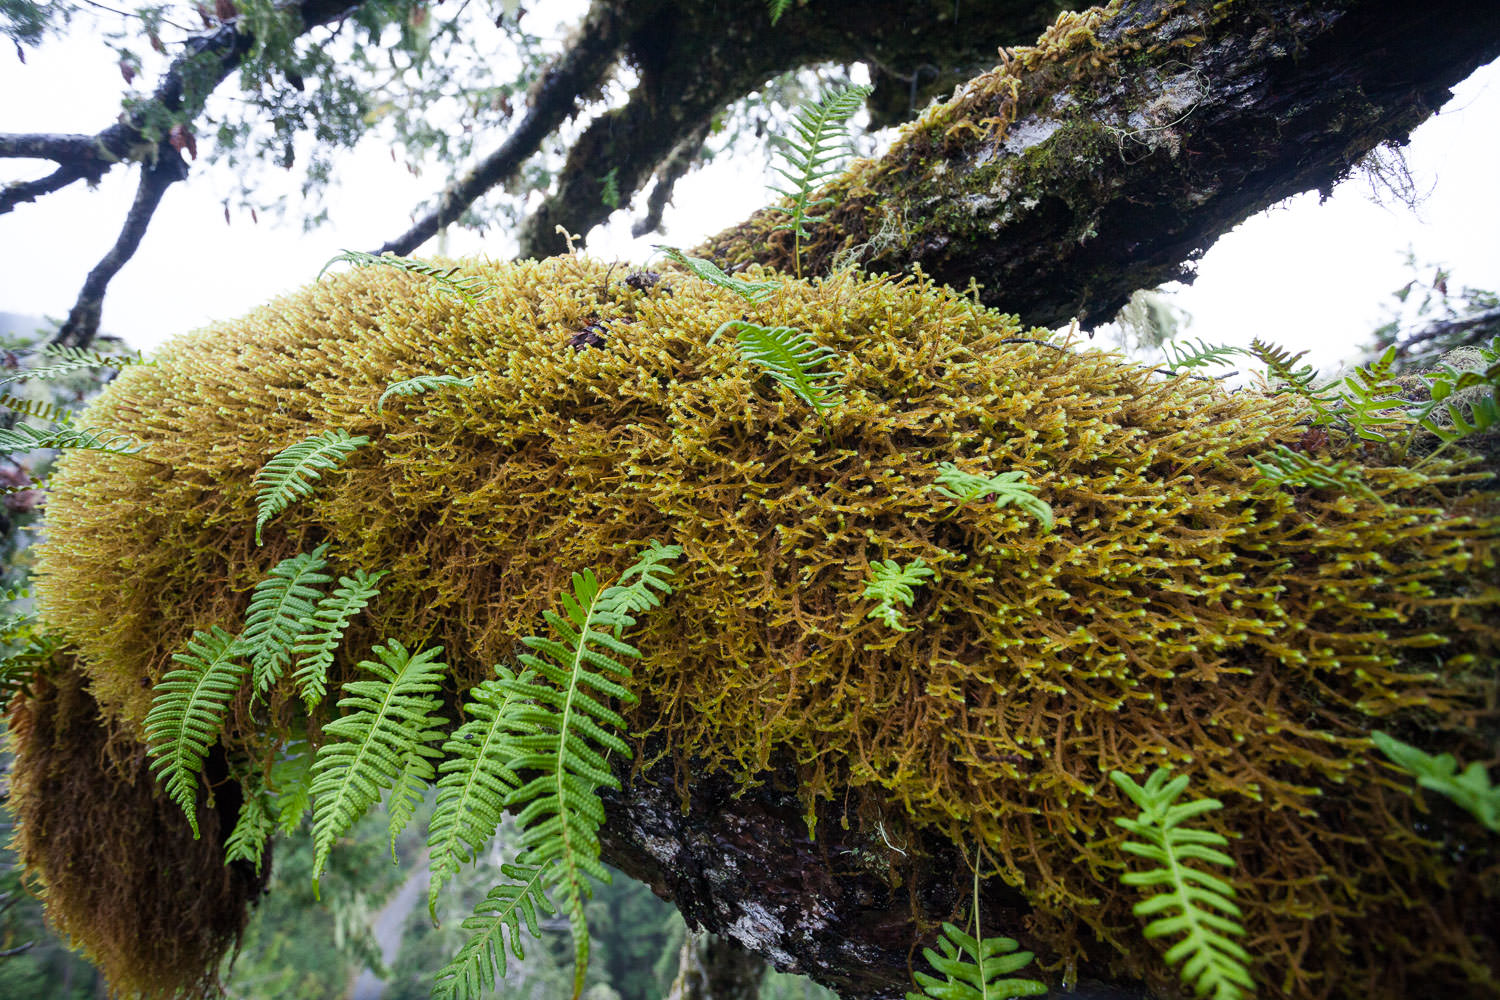 A bed of moss and licorice fern.